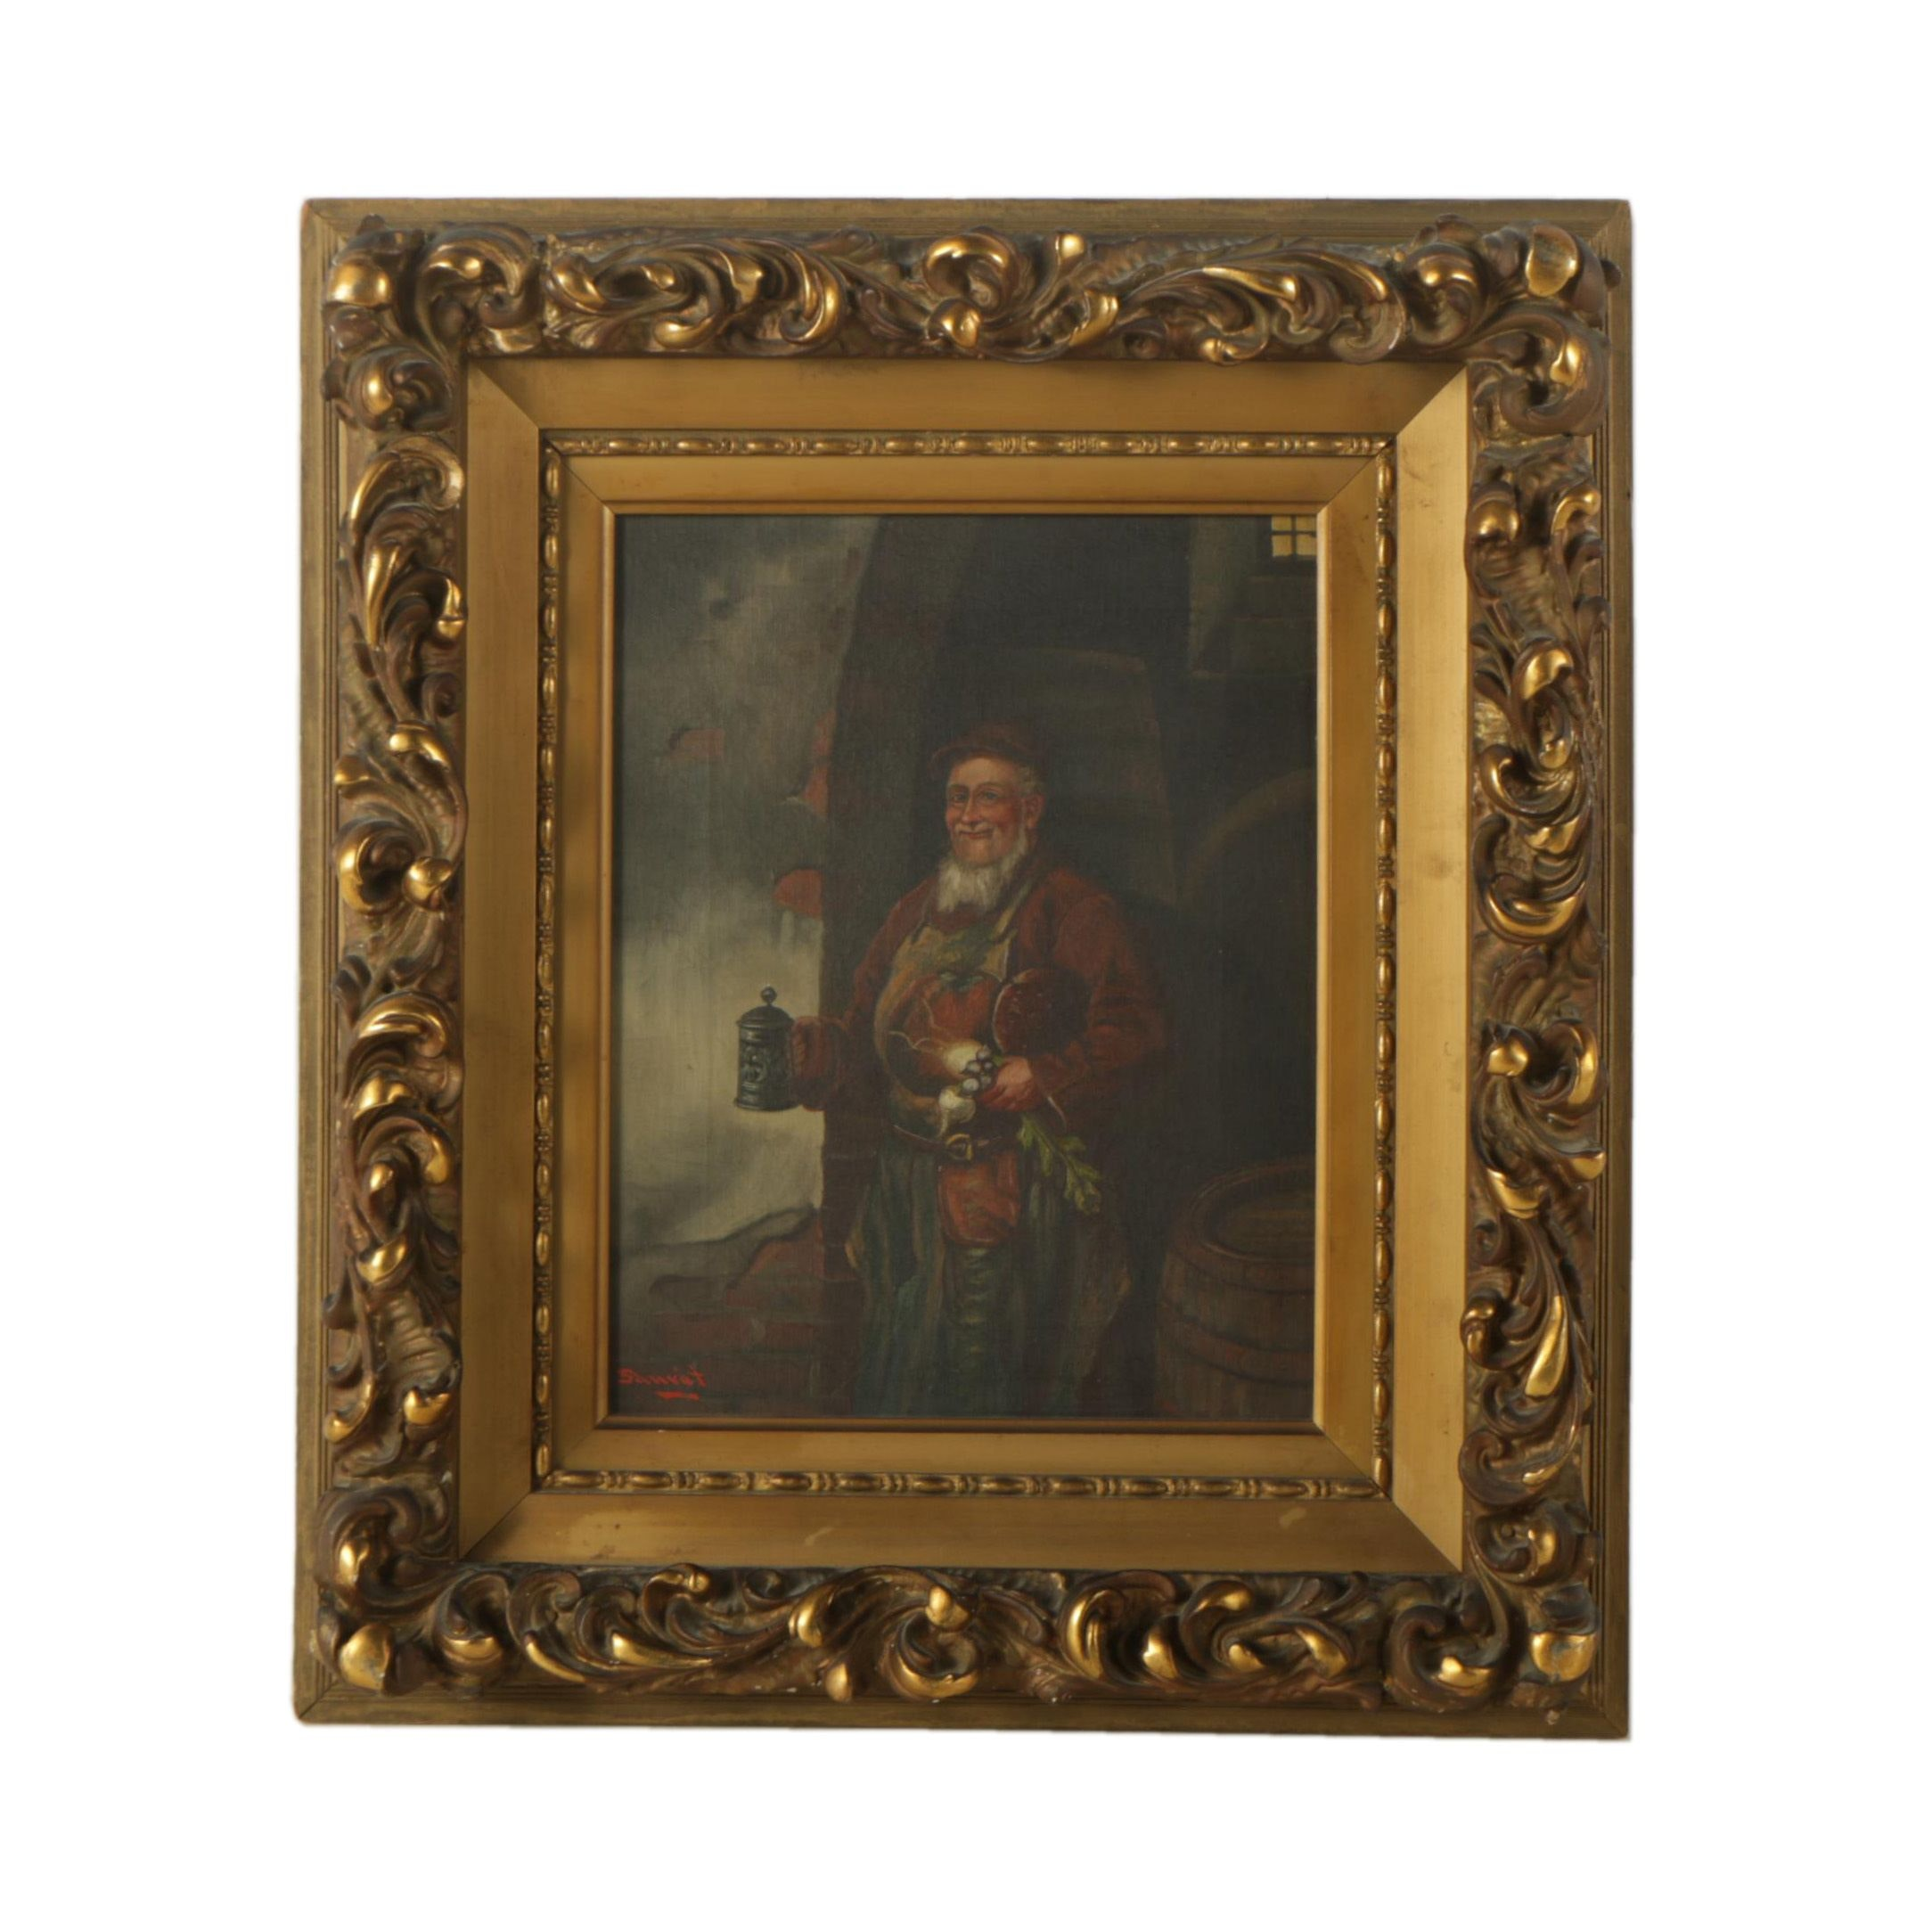 Sauret Oil on Canvas Painting of a Happy Man with Food and Drink